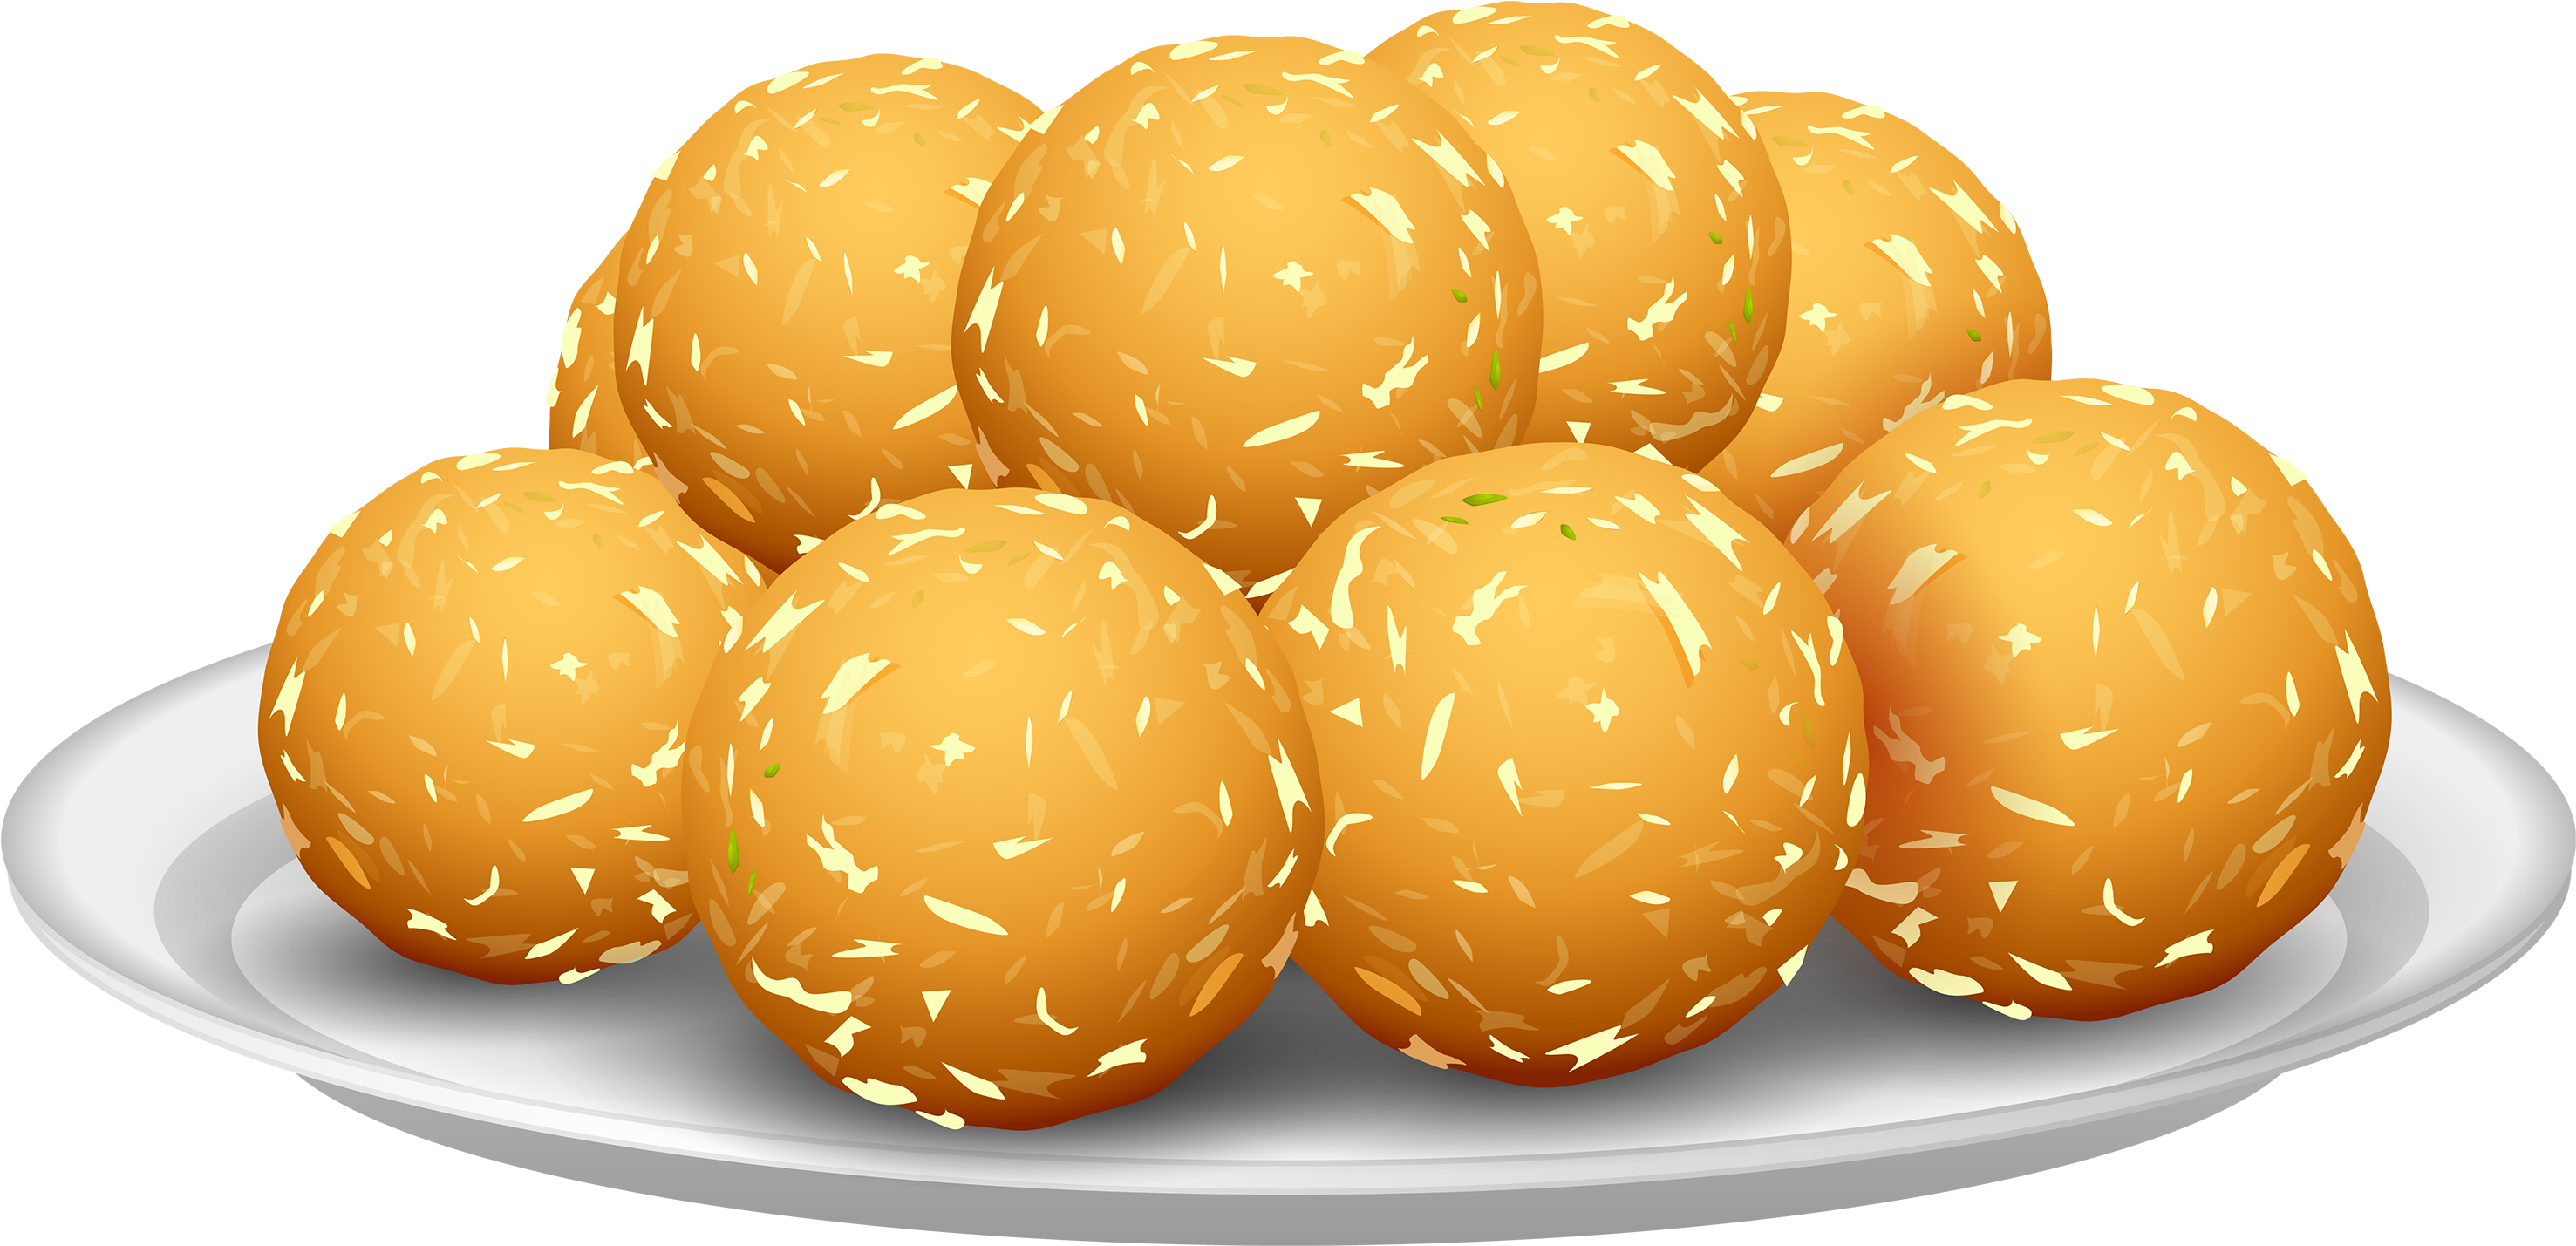 Background clipart food. Download potato croquettes png